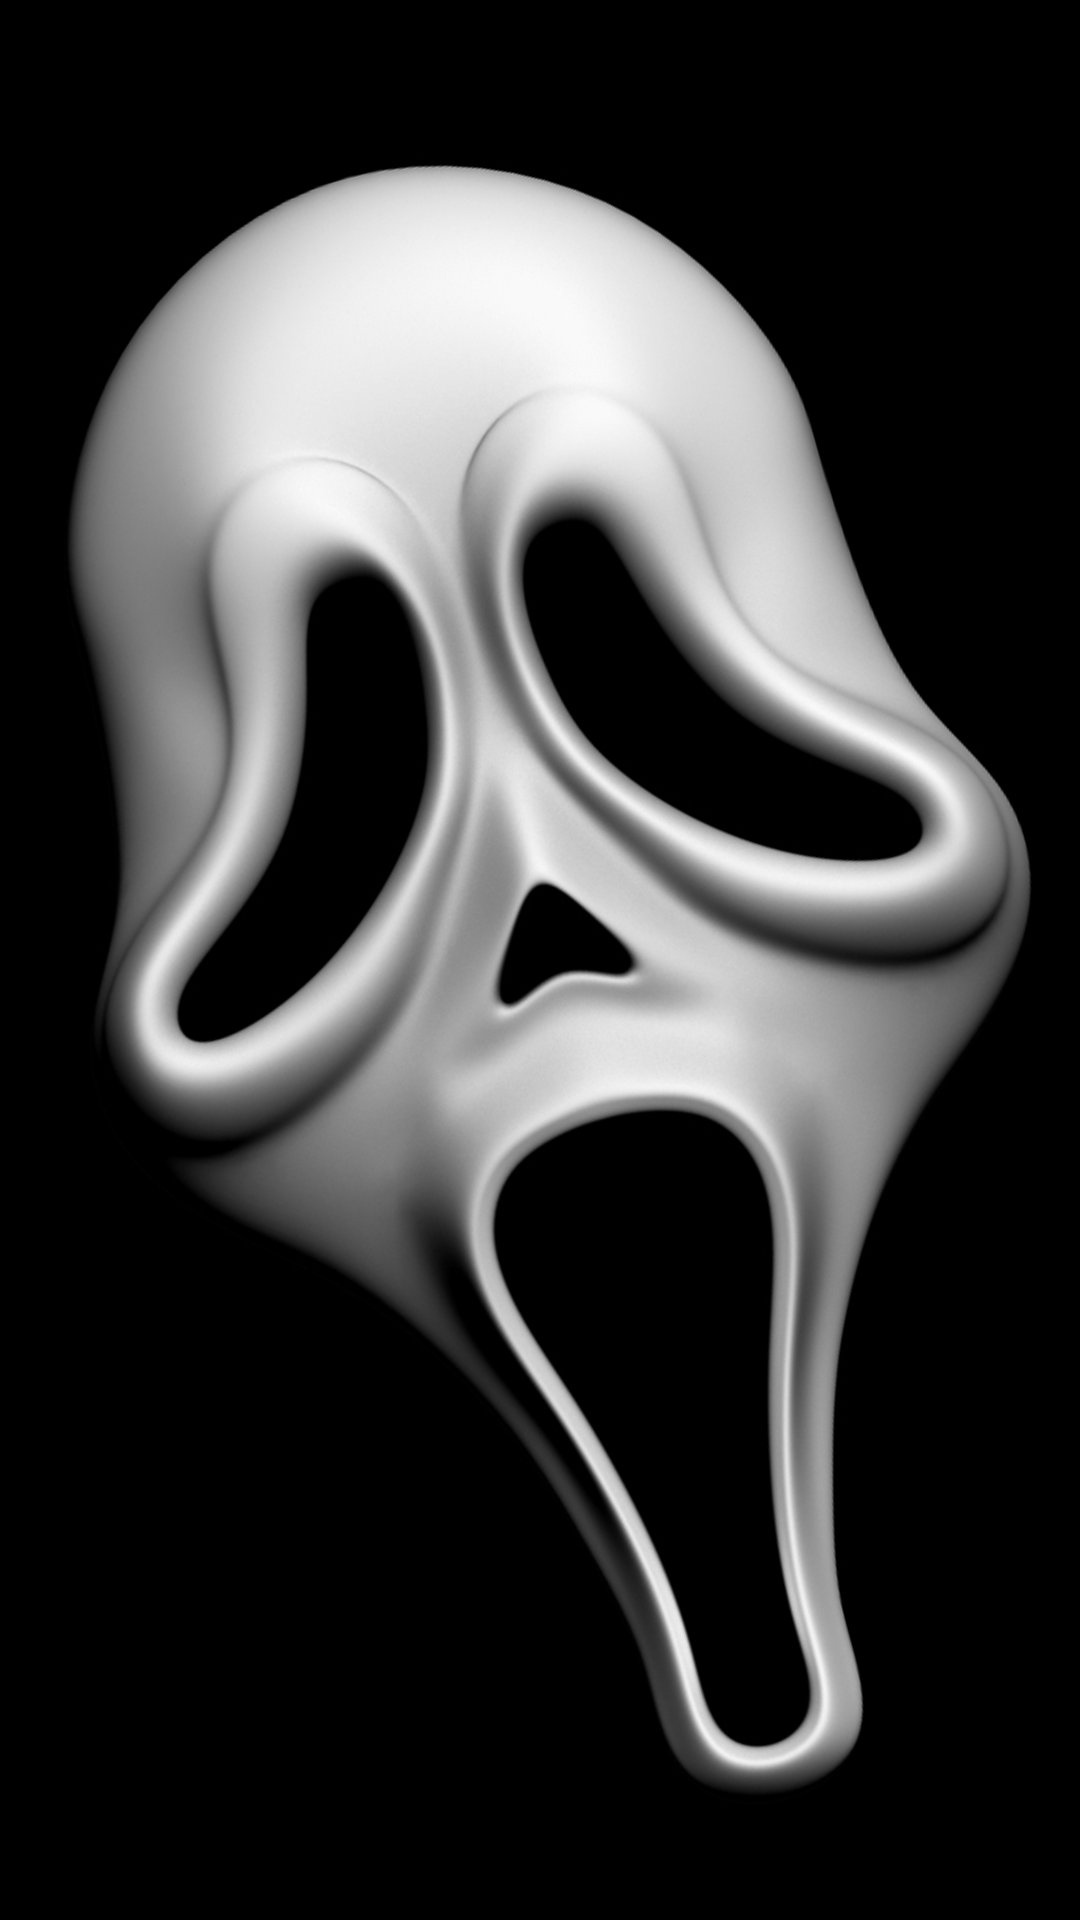 Scream Mask Wallpaper For Android